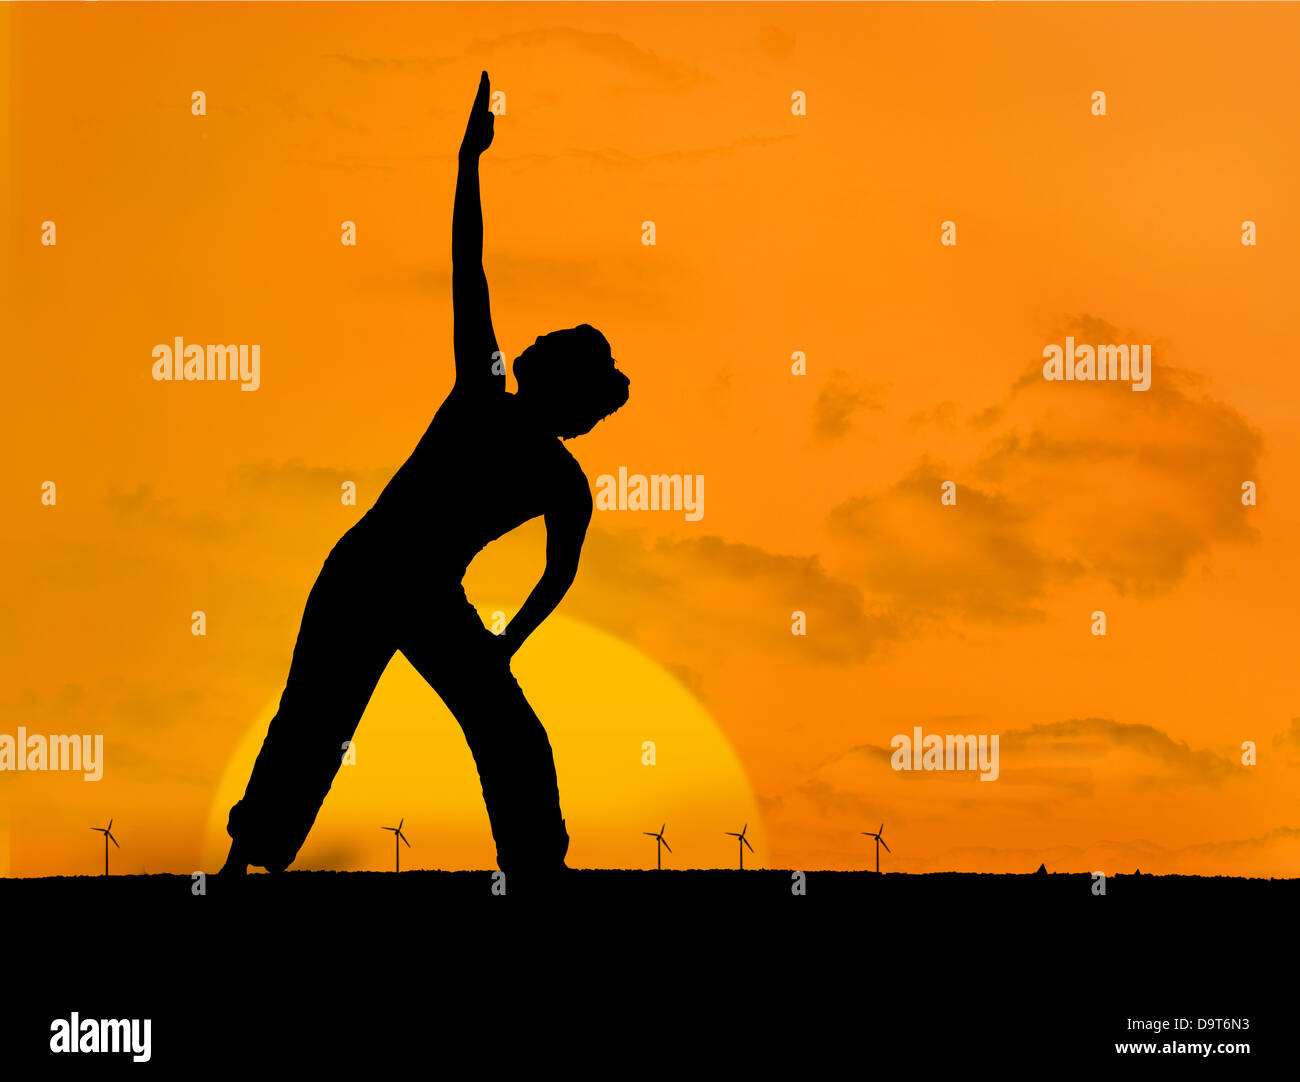 Calm silhouette of woman practicing yoga - Stock Image